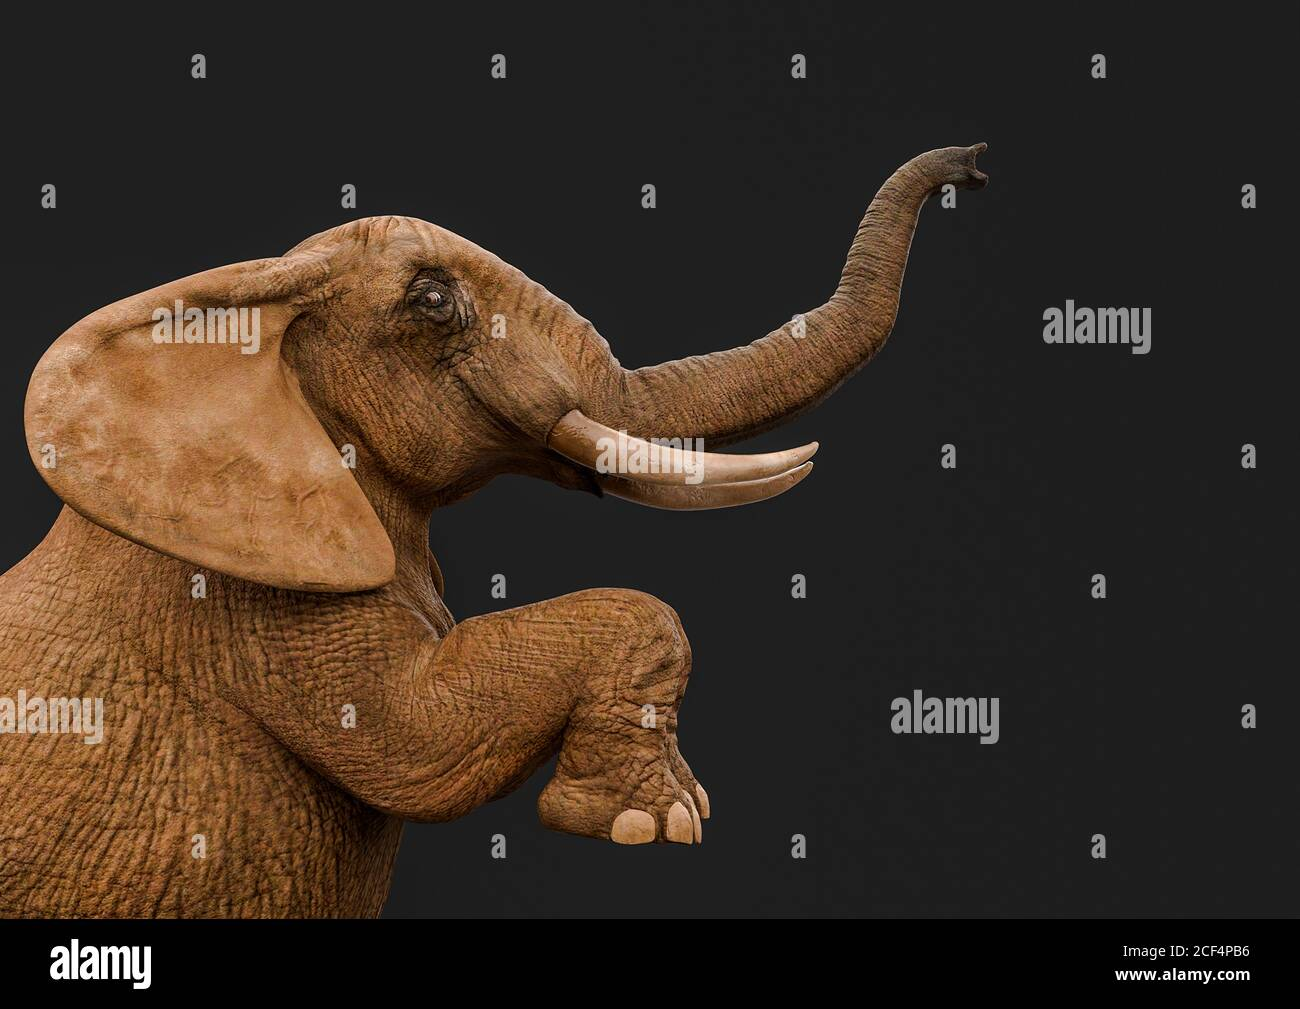 Elephant Trunk Up High Resolution Stock Photography And Images Alamy 22 free photos of elephant standing. https www alamy com african elephant is standing up in a dark grey background side view 3d illustration image370742938 html